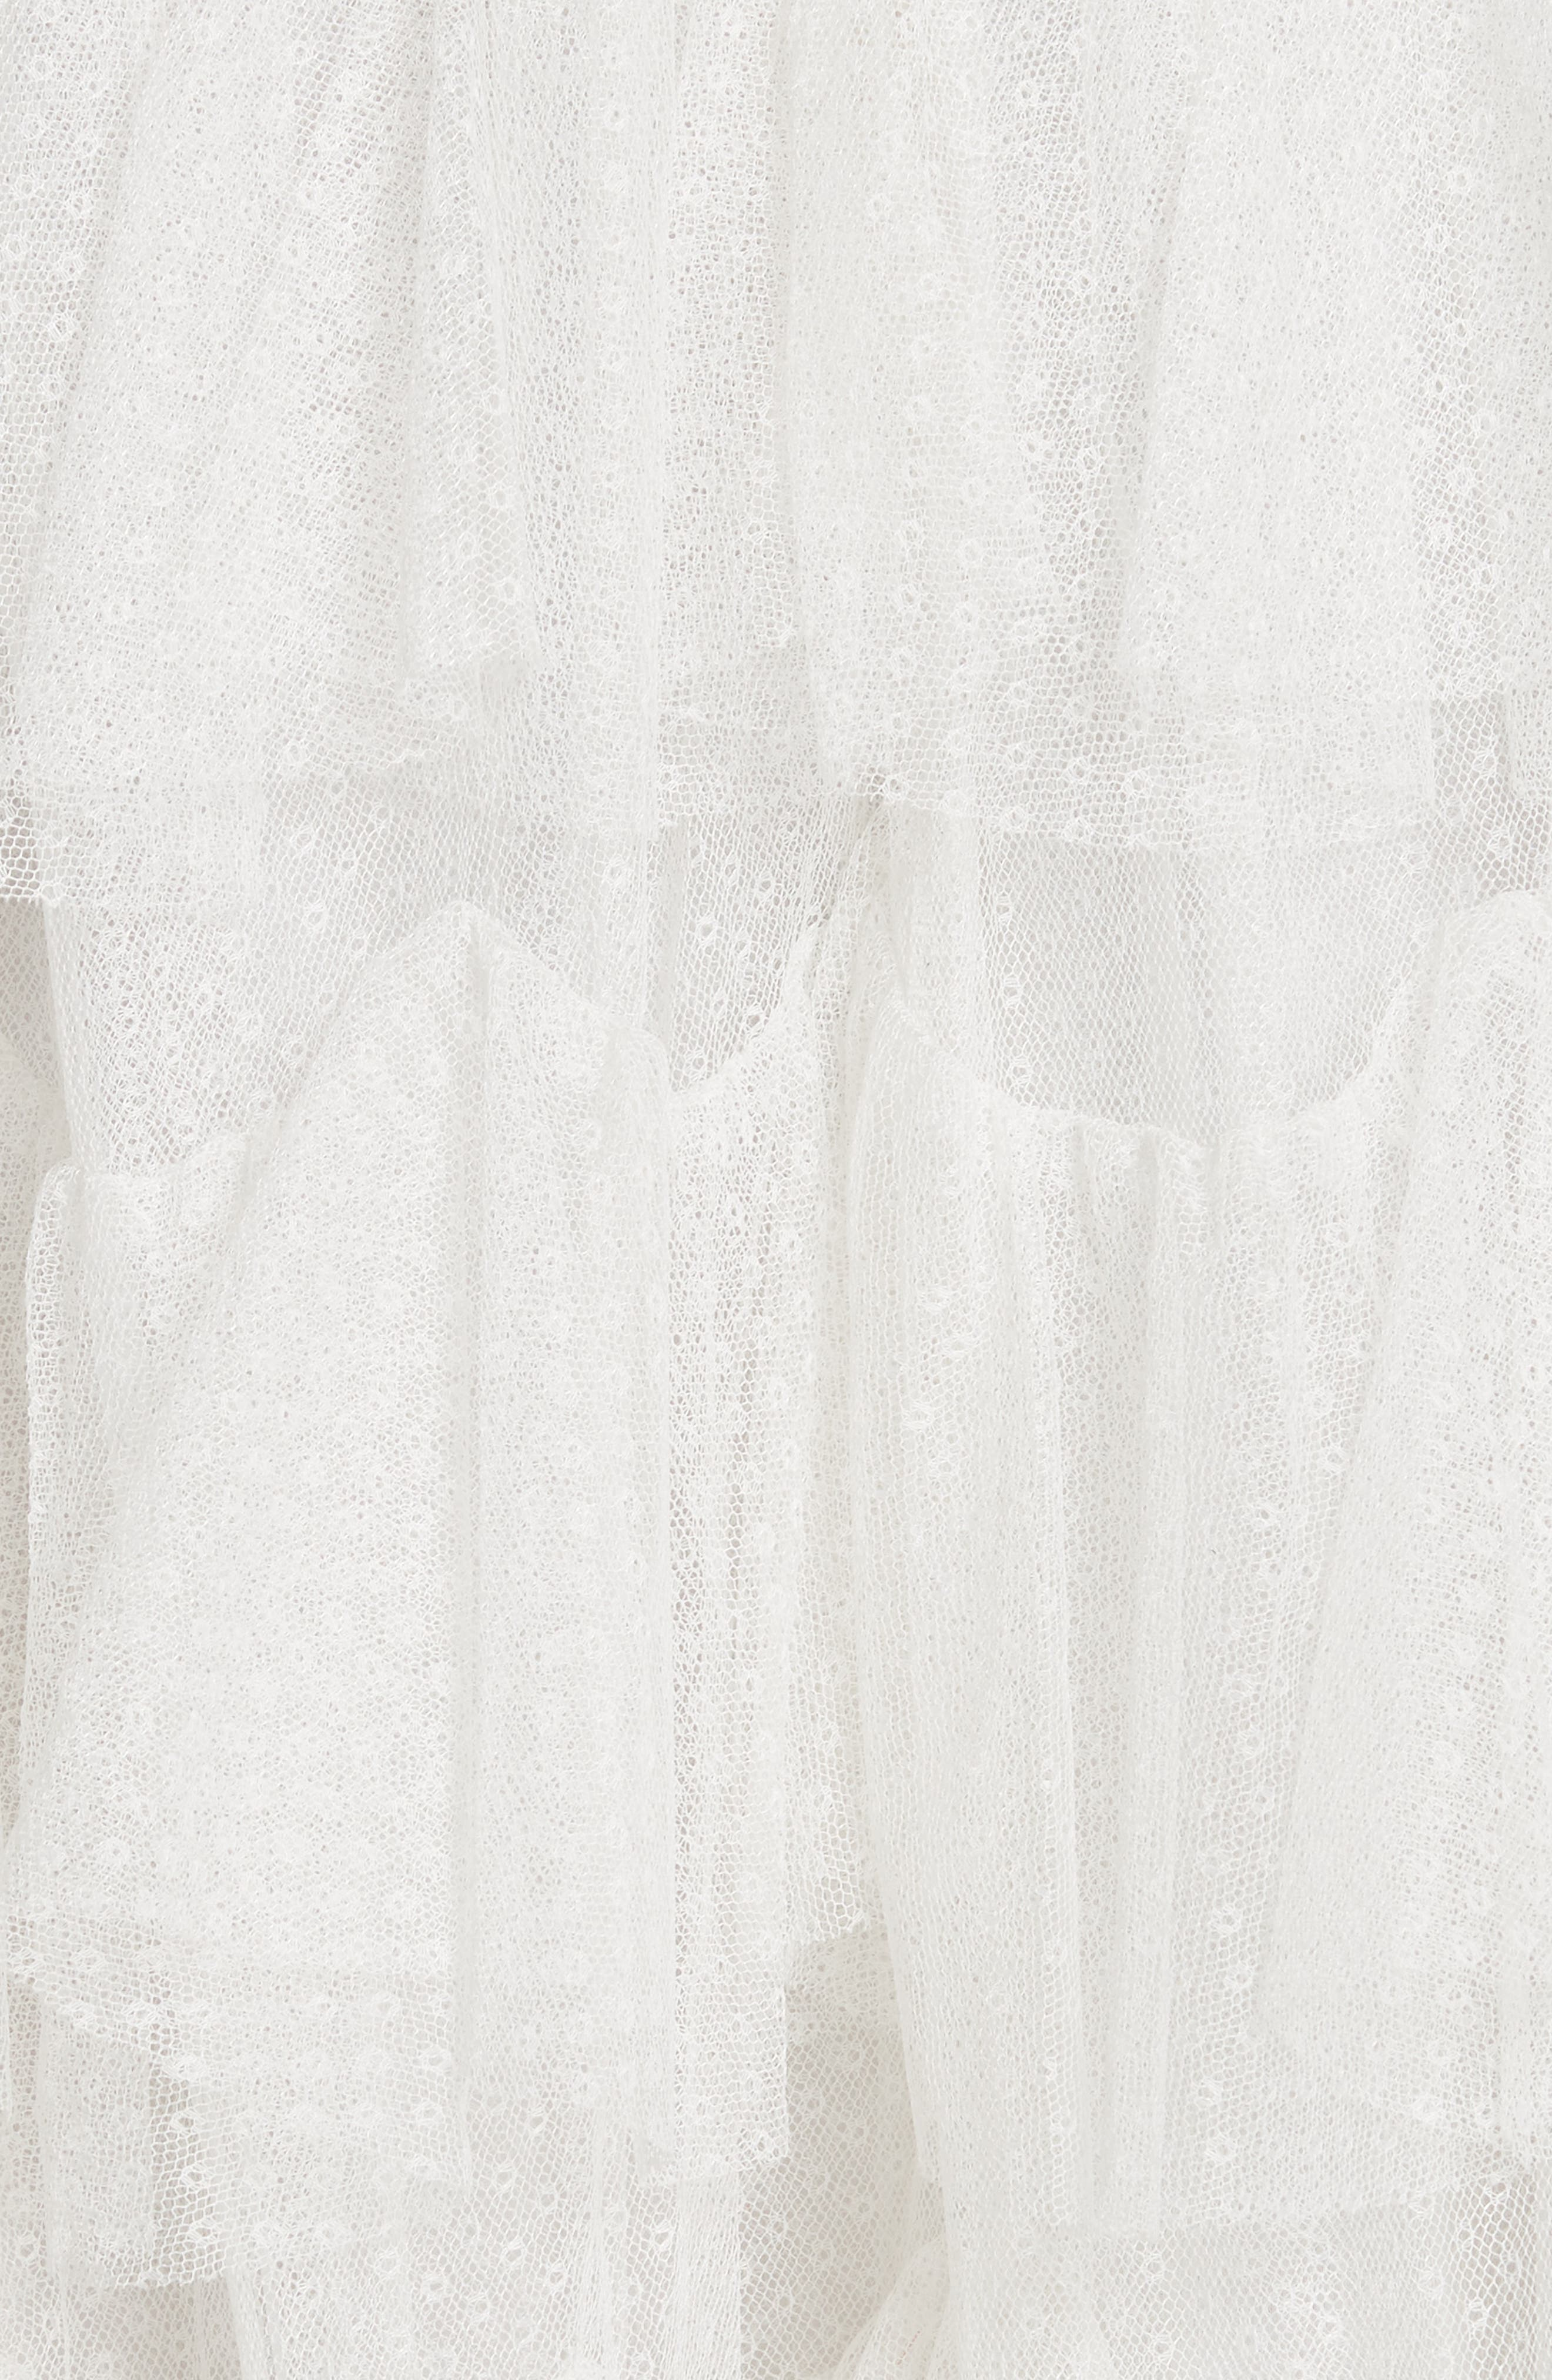 Tiered Tulle Skirt,                             Alternate thumbnail 5, color,                             Pearl